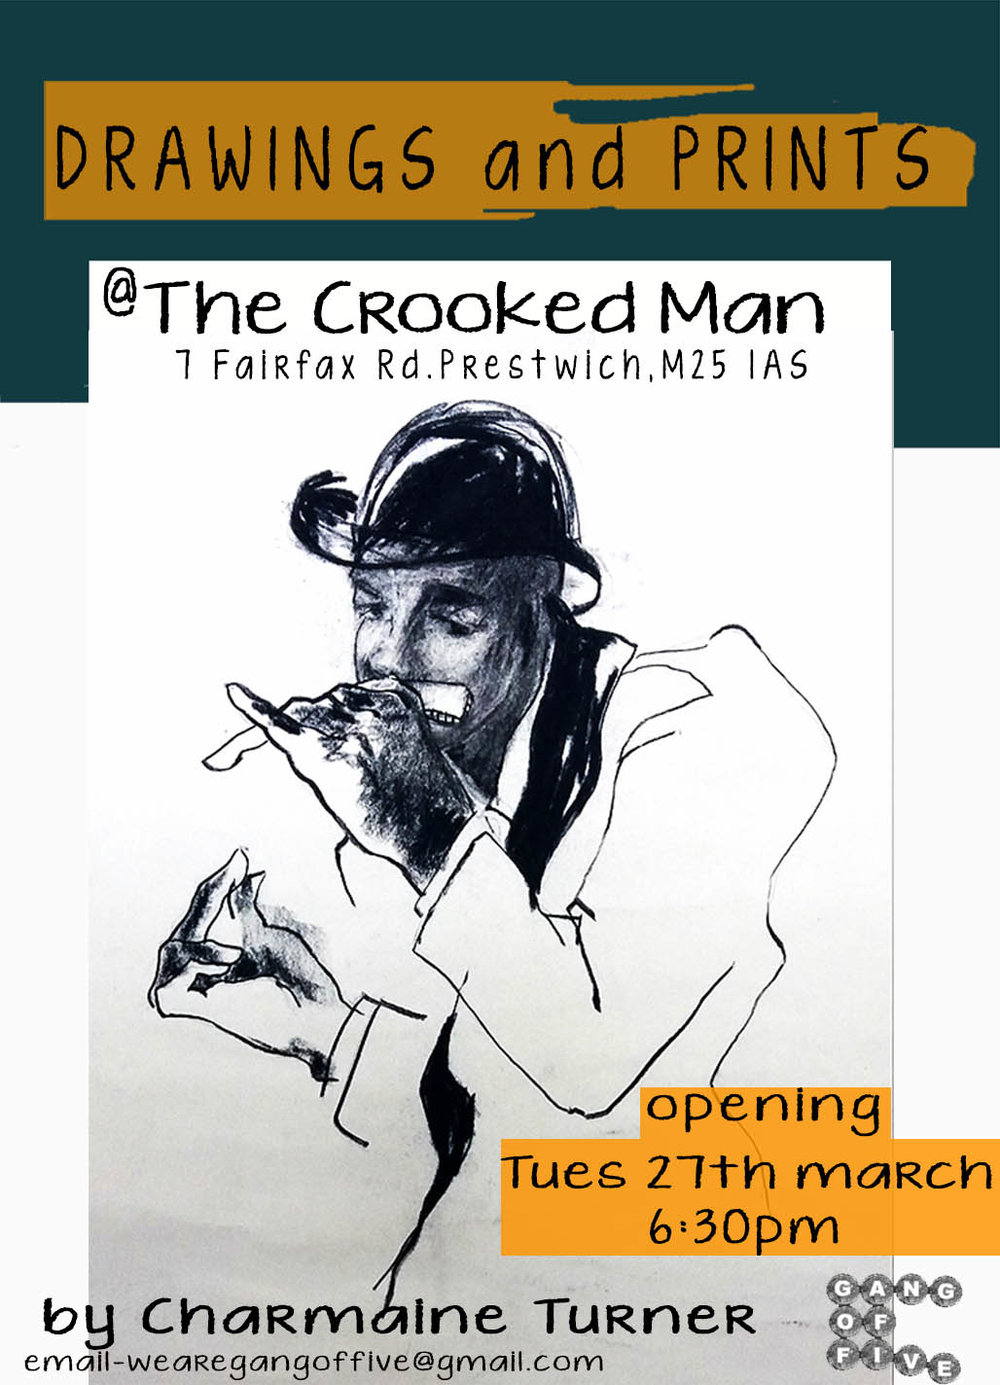 crooked man  sonny advert3.jpg